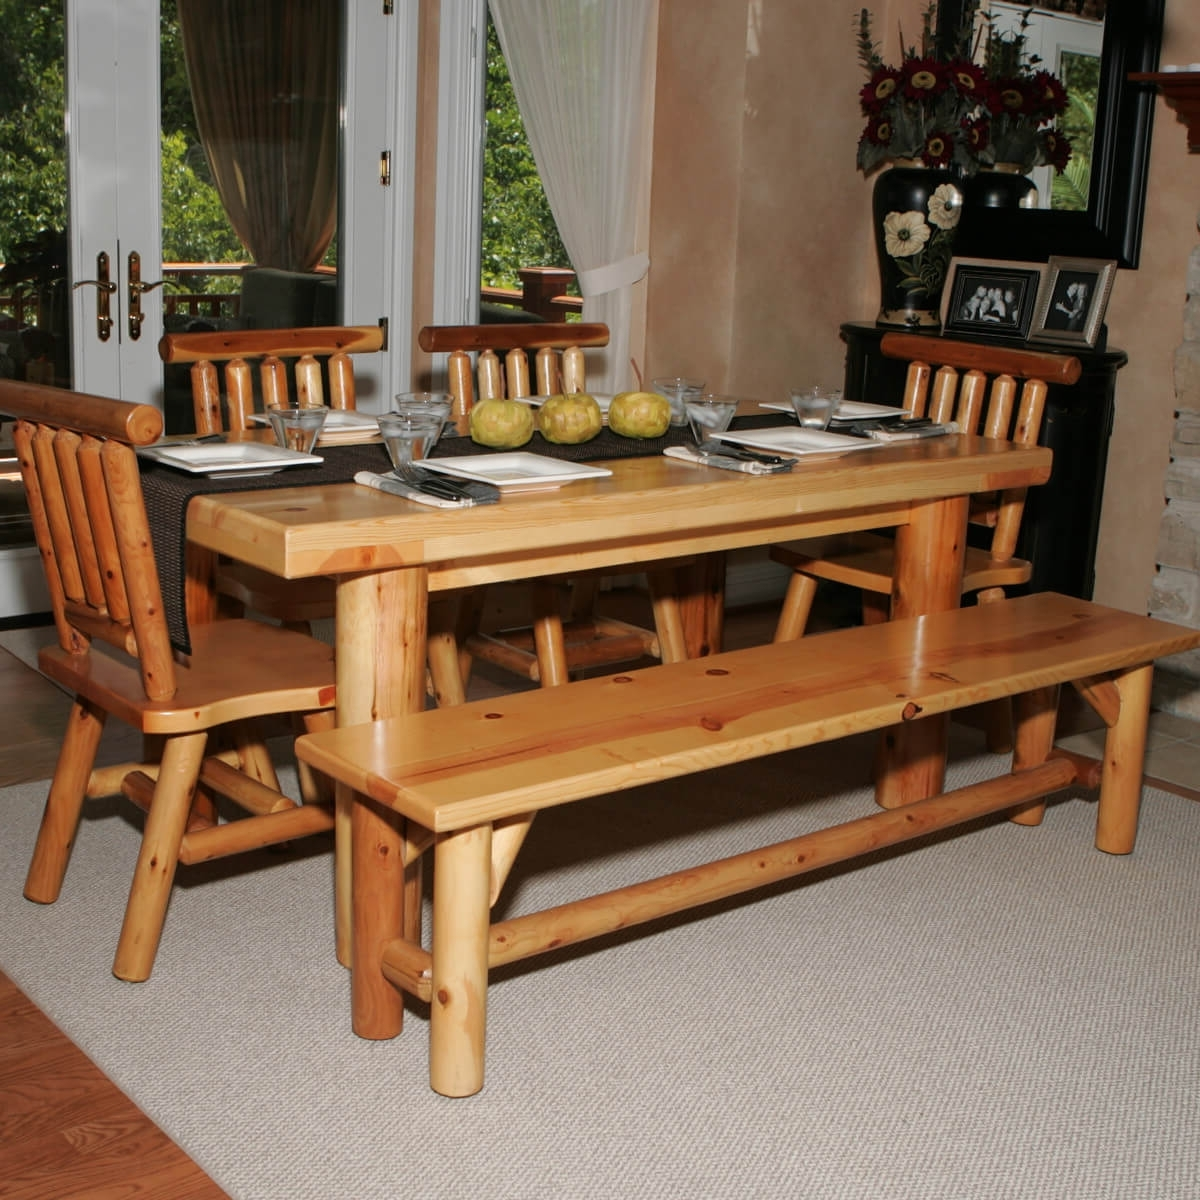 26 Dining Room Sets (Big And Small) With Bench Seating (2018) Throughout Trendy Indoor Picnic Style Dining Tables (View 2 of 25)